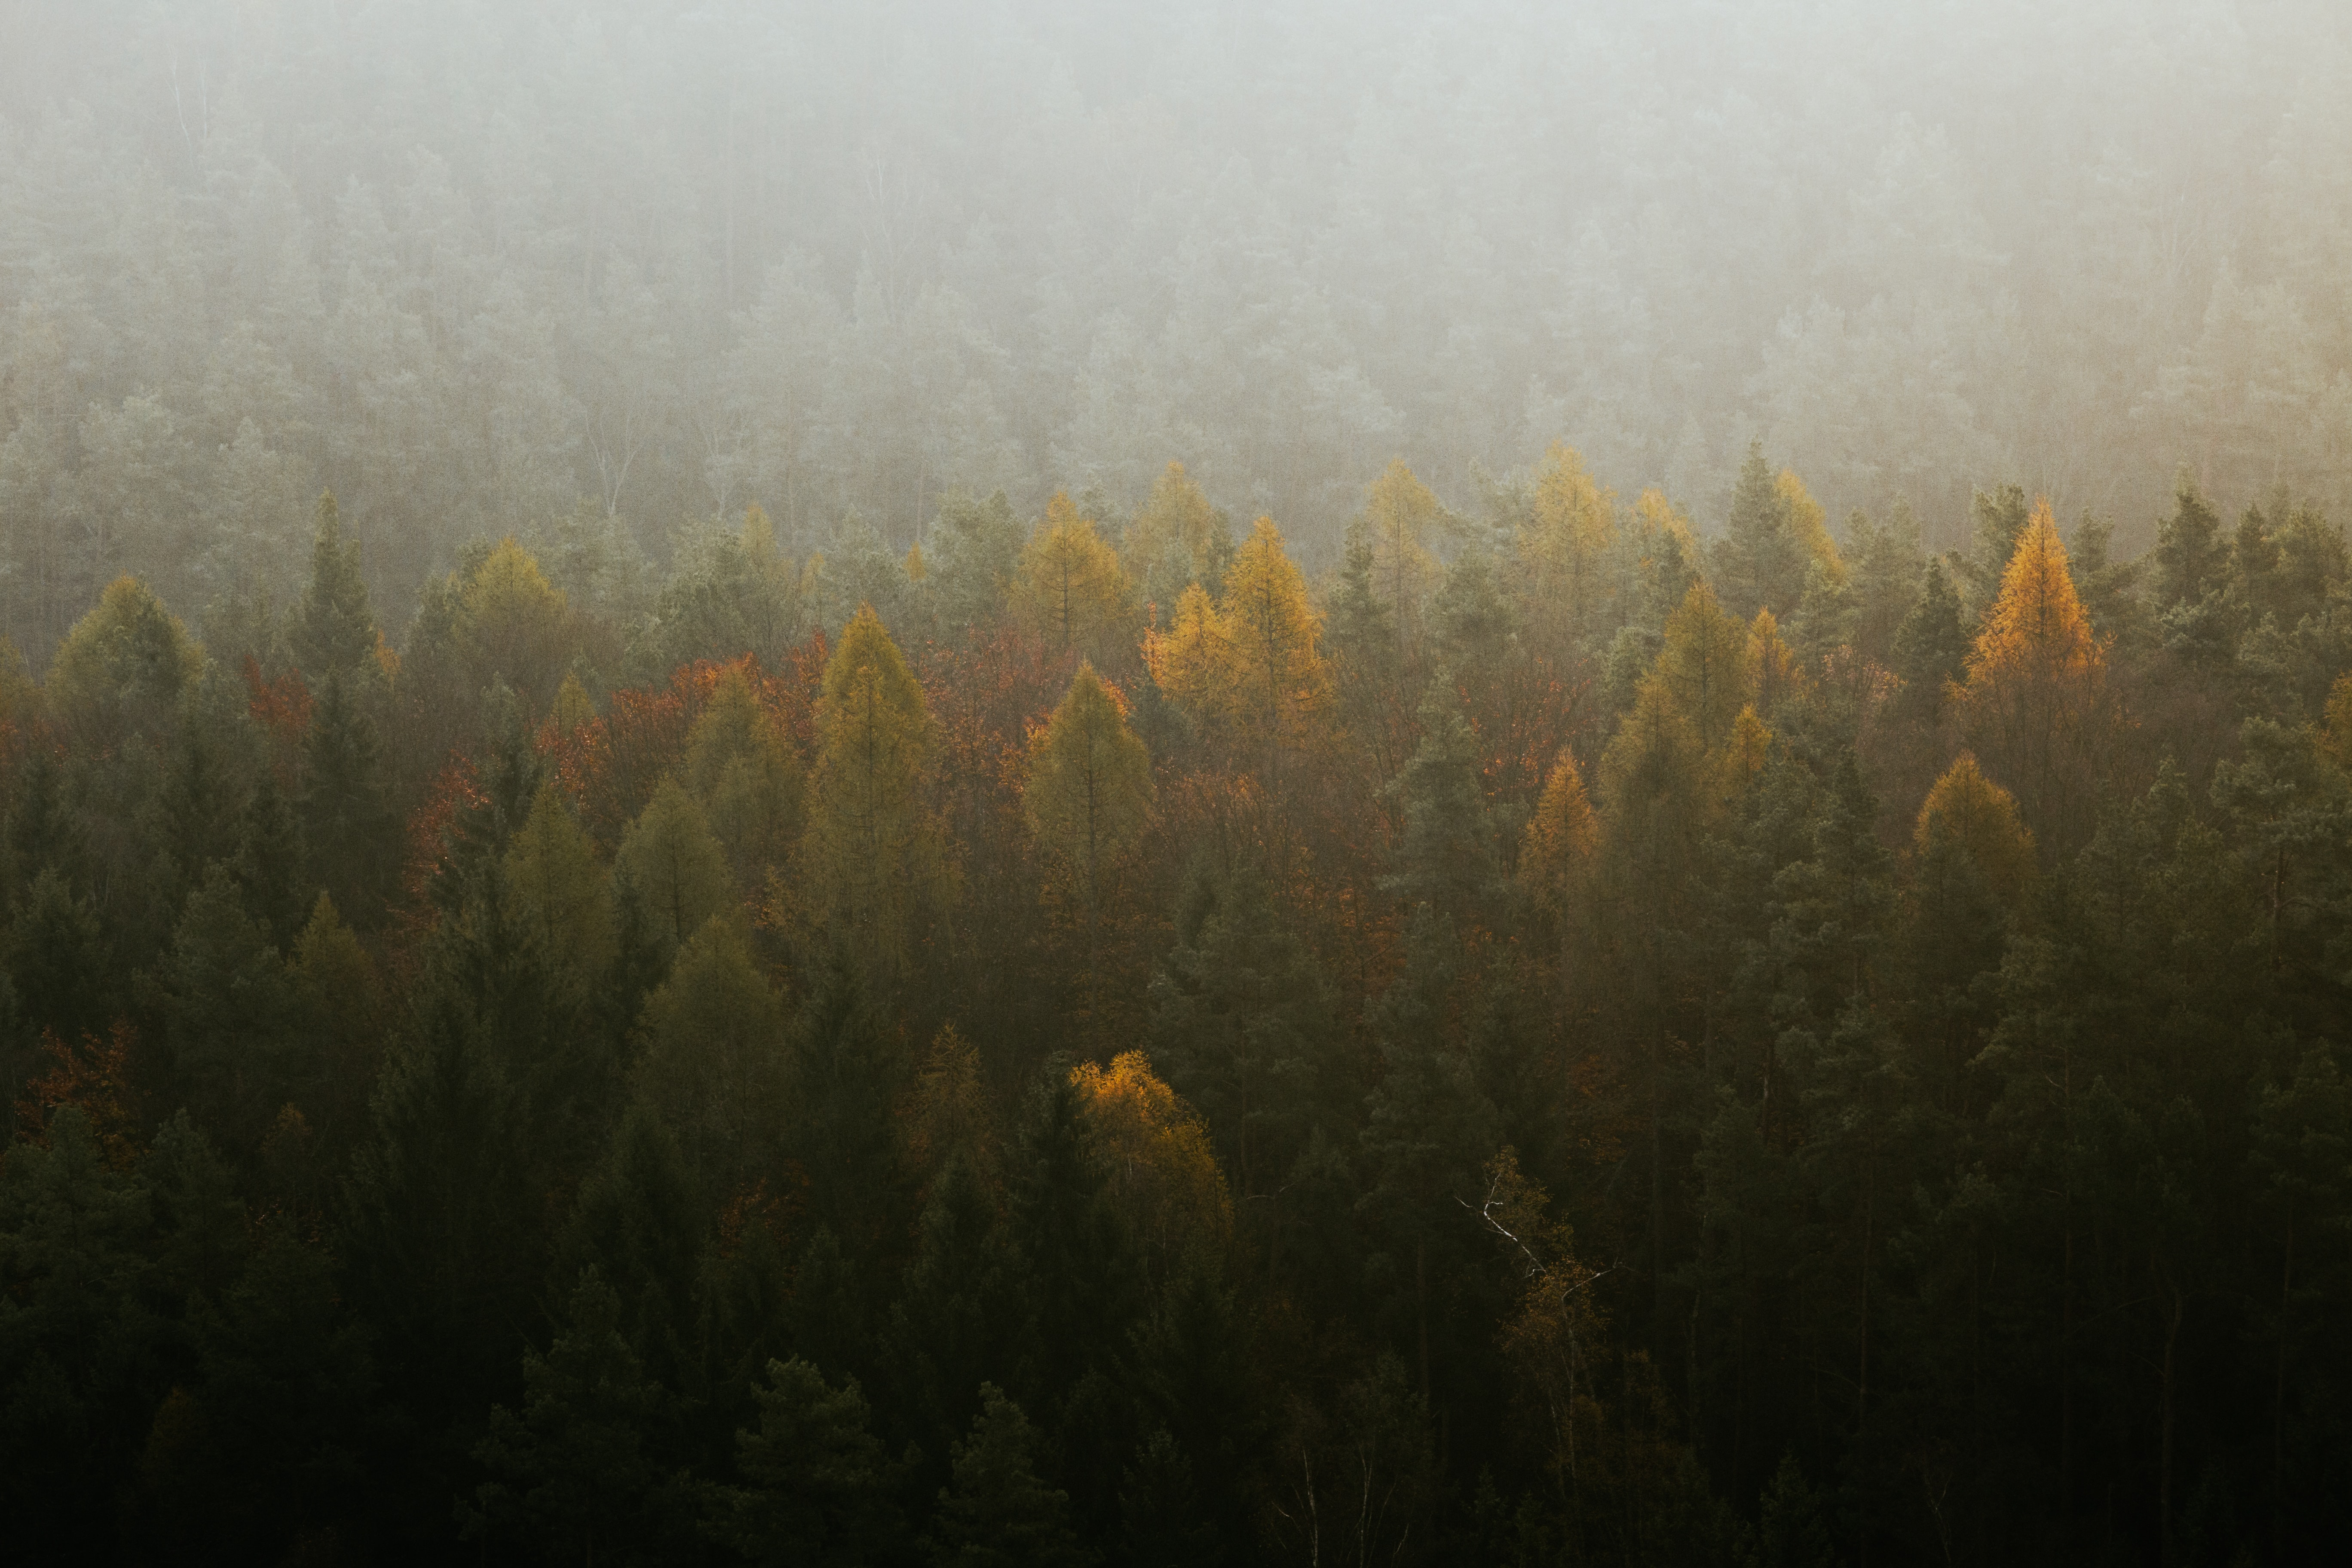 aerial view of green and yellow trees